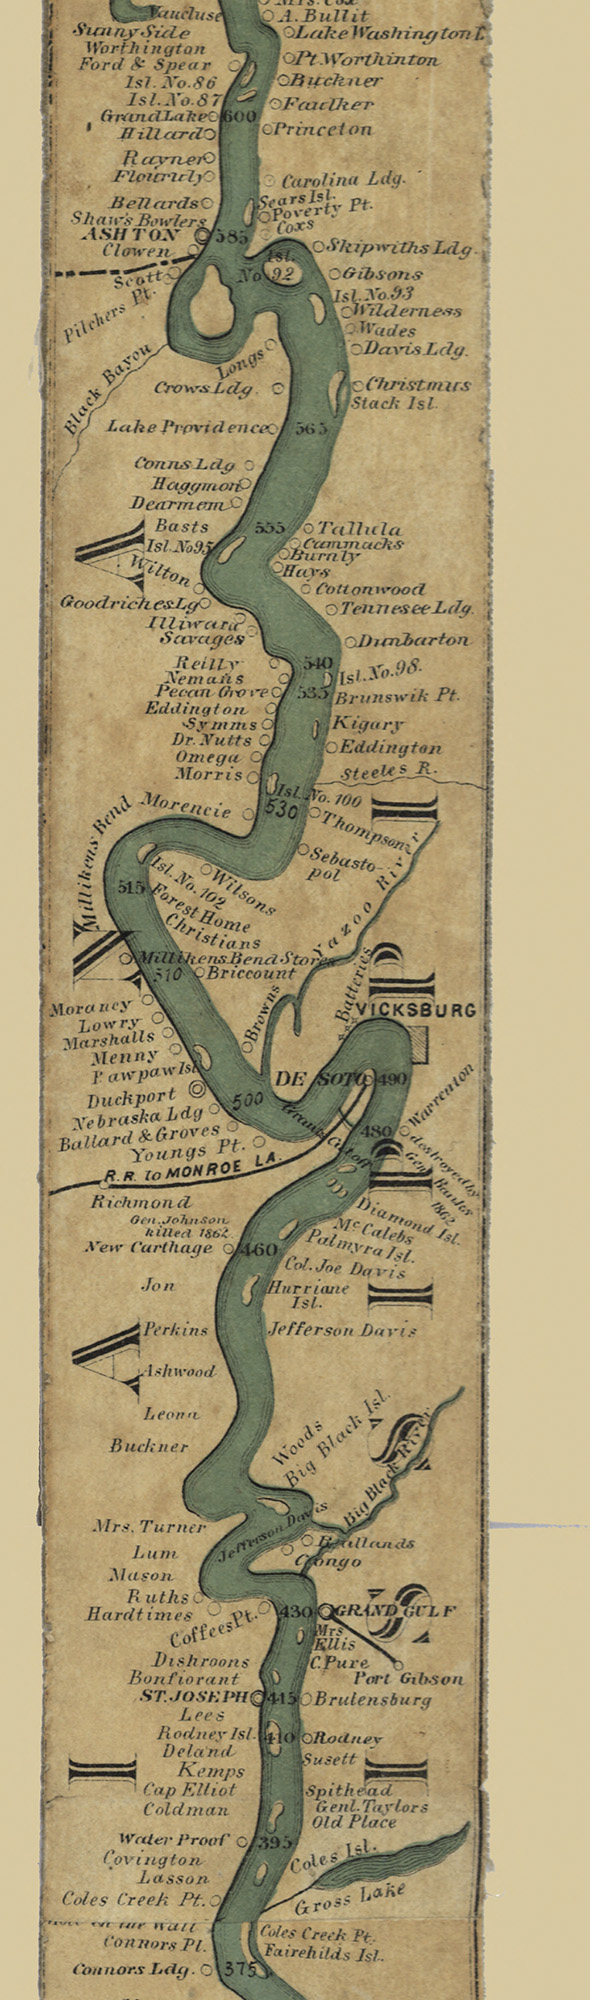 """This 11-foot-long """"ribbon map"""" of the Mississippi River, printed in 1866.Myron Coloney and Sidney B. Fairchild makers. www.loc.gov"""